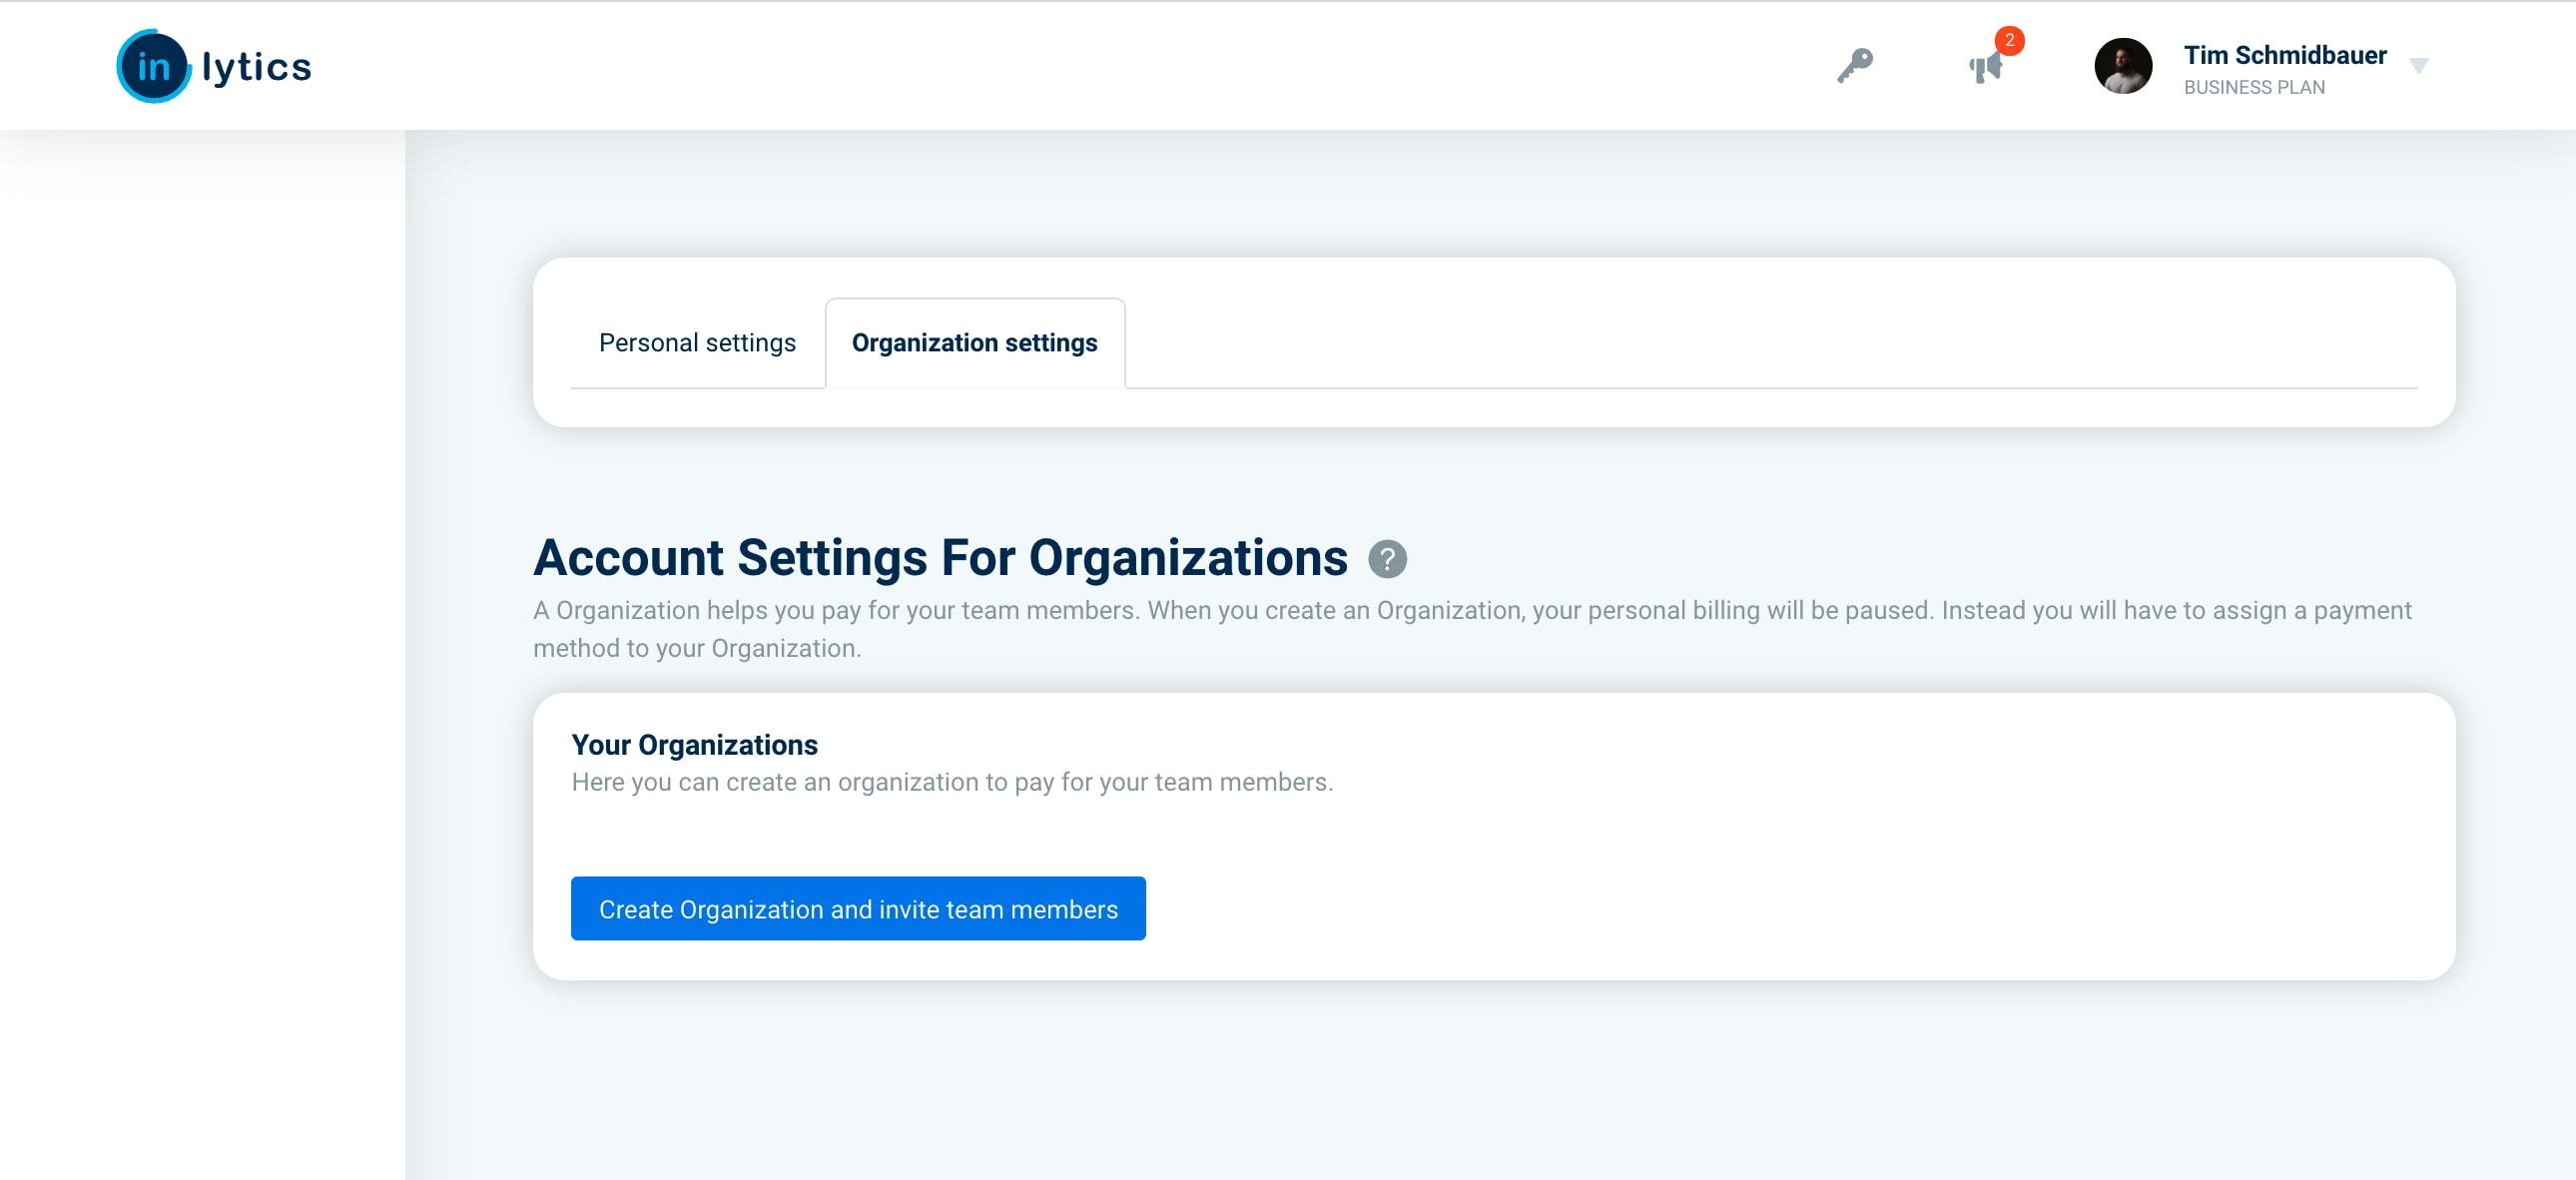 How to add a organization in inlytics - navigate to your settings